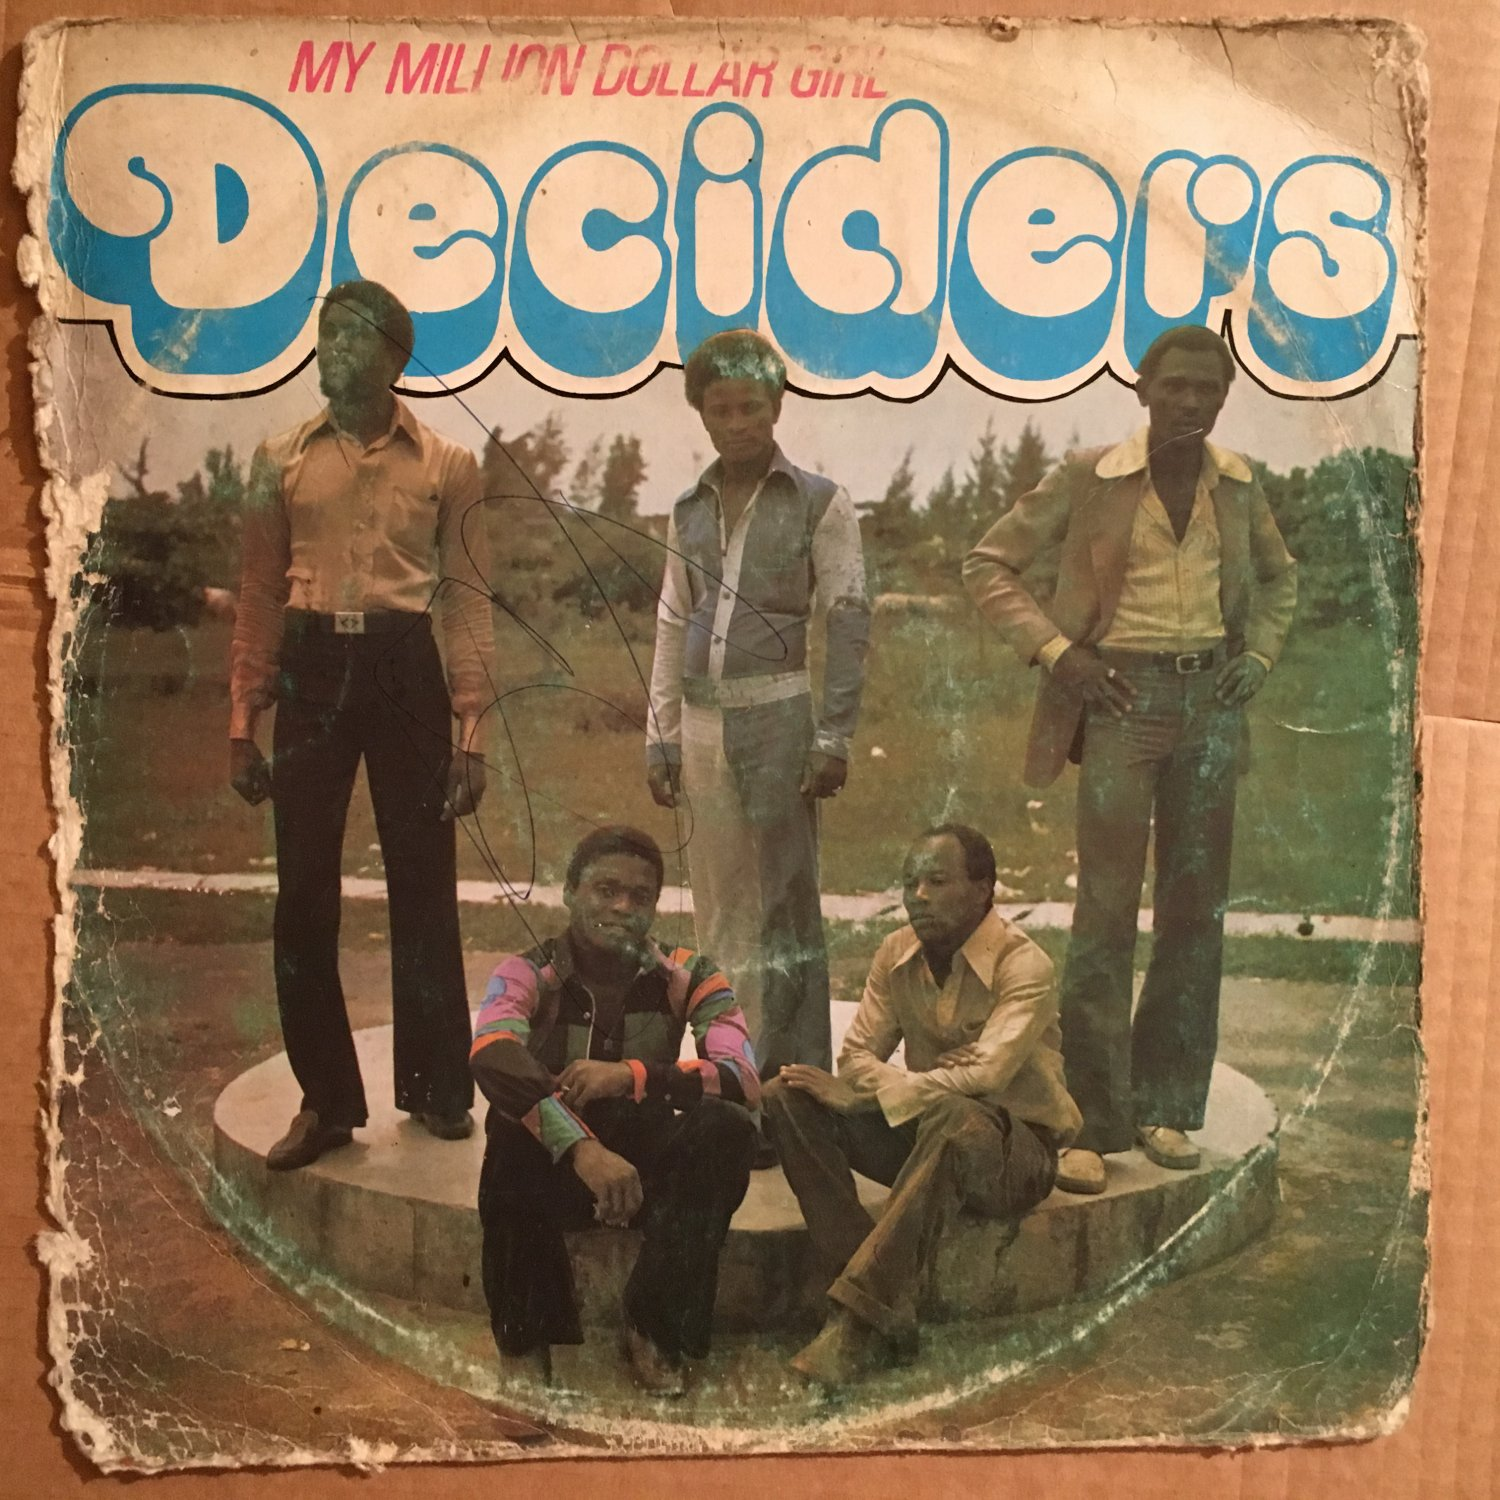 THE DECIDERS LP my million dollar girl REGGAE SOUL NIGERIA mp3 LISTEN